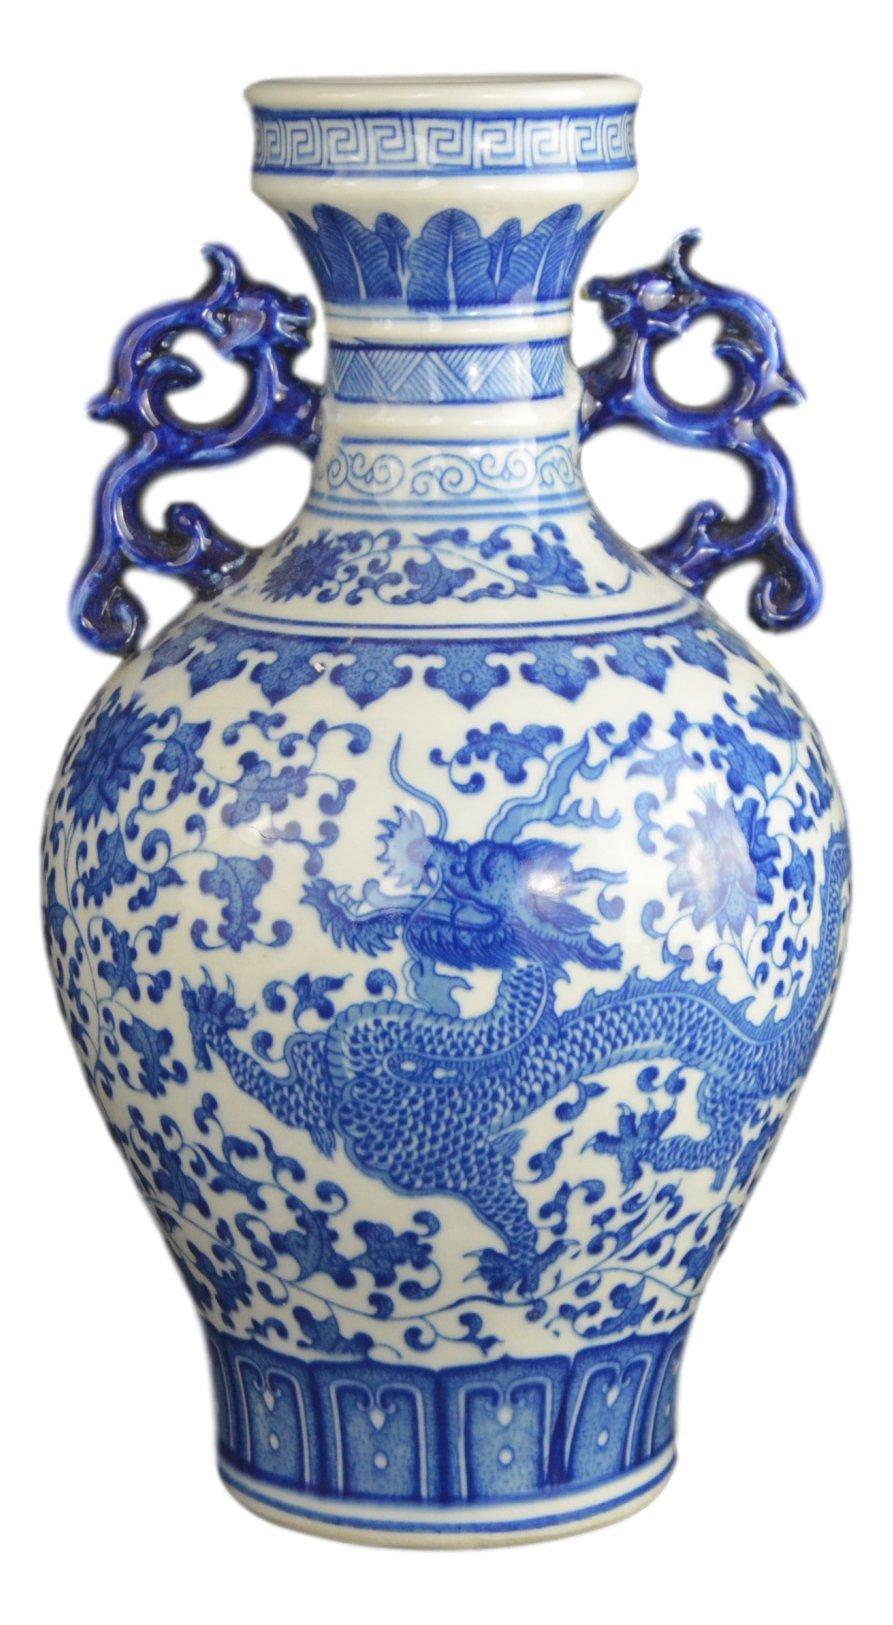 Classic Blue and White Dragon Porcelain Vase, Jingdezhen, China